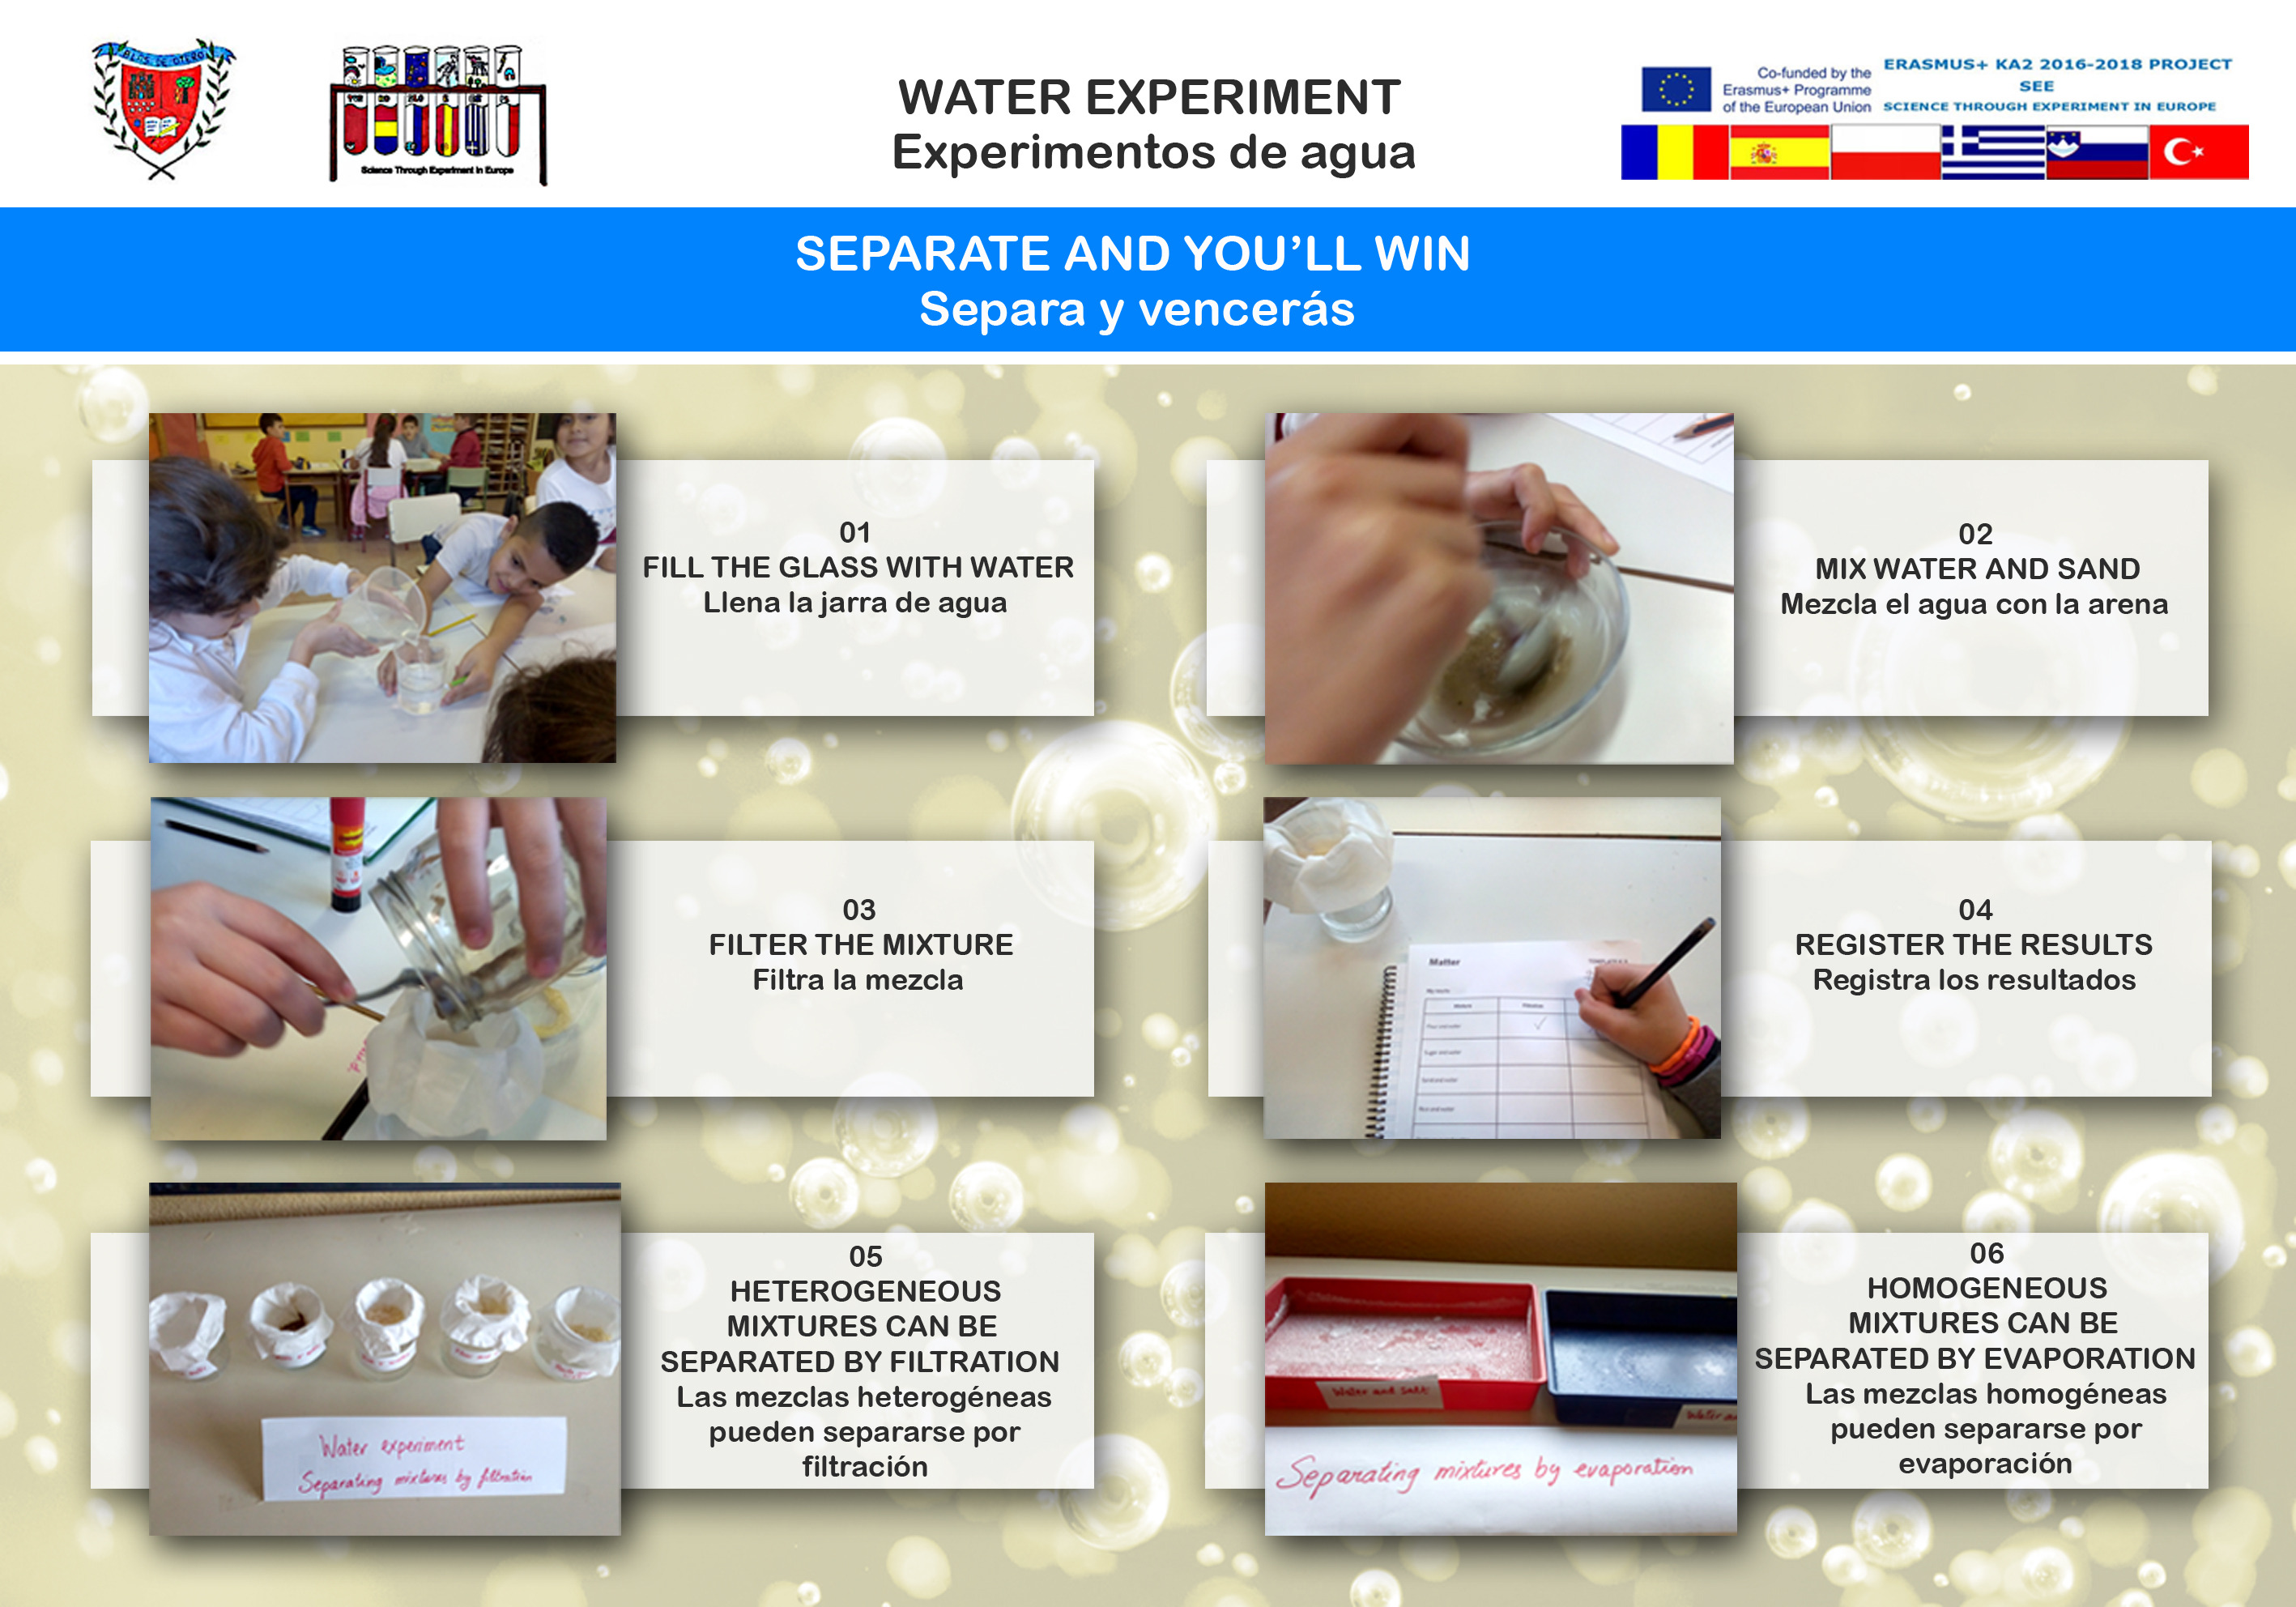 Water experiment 04 Separate and you'll win